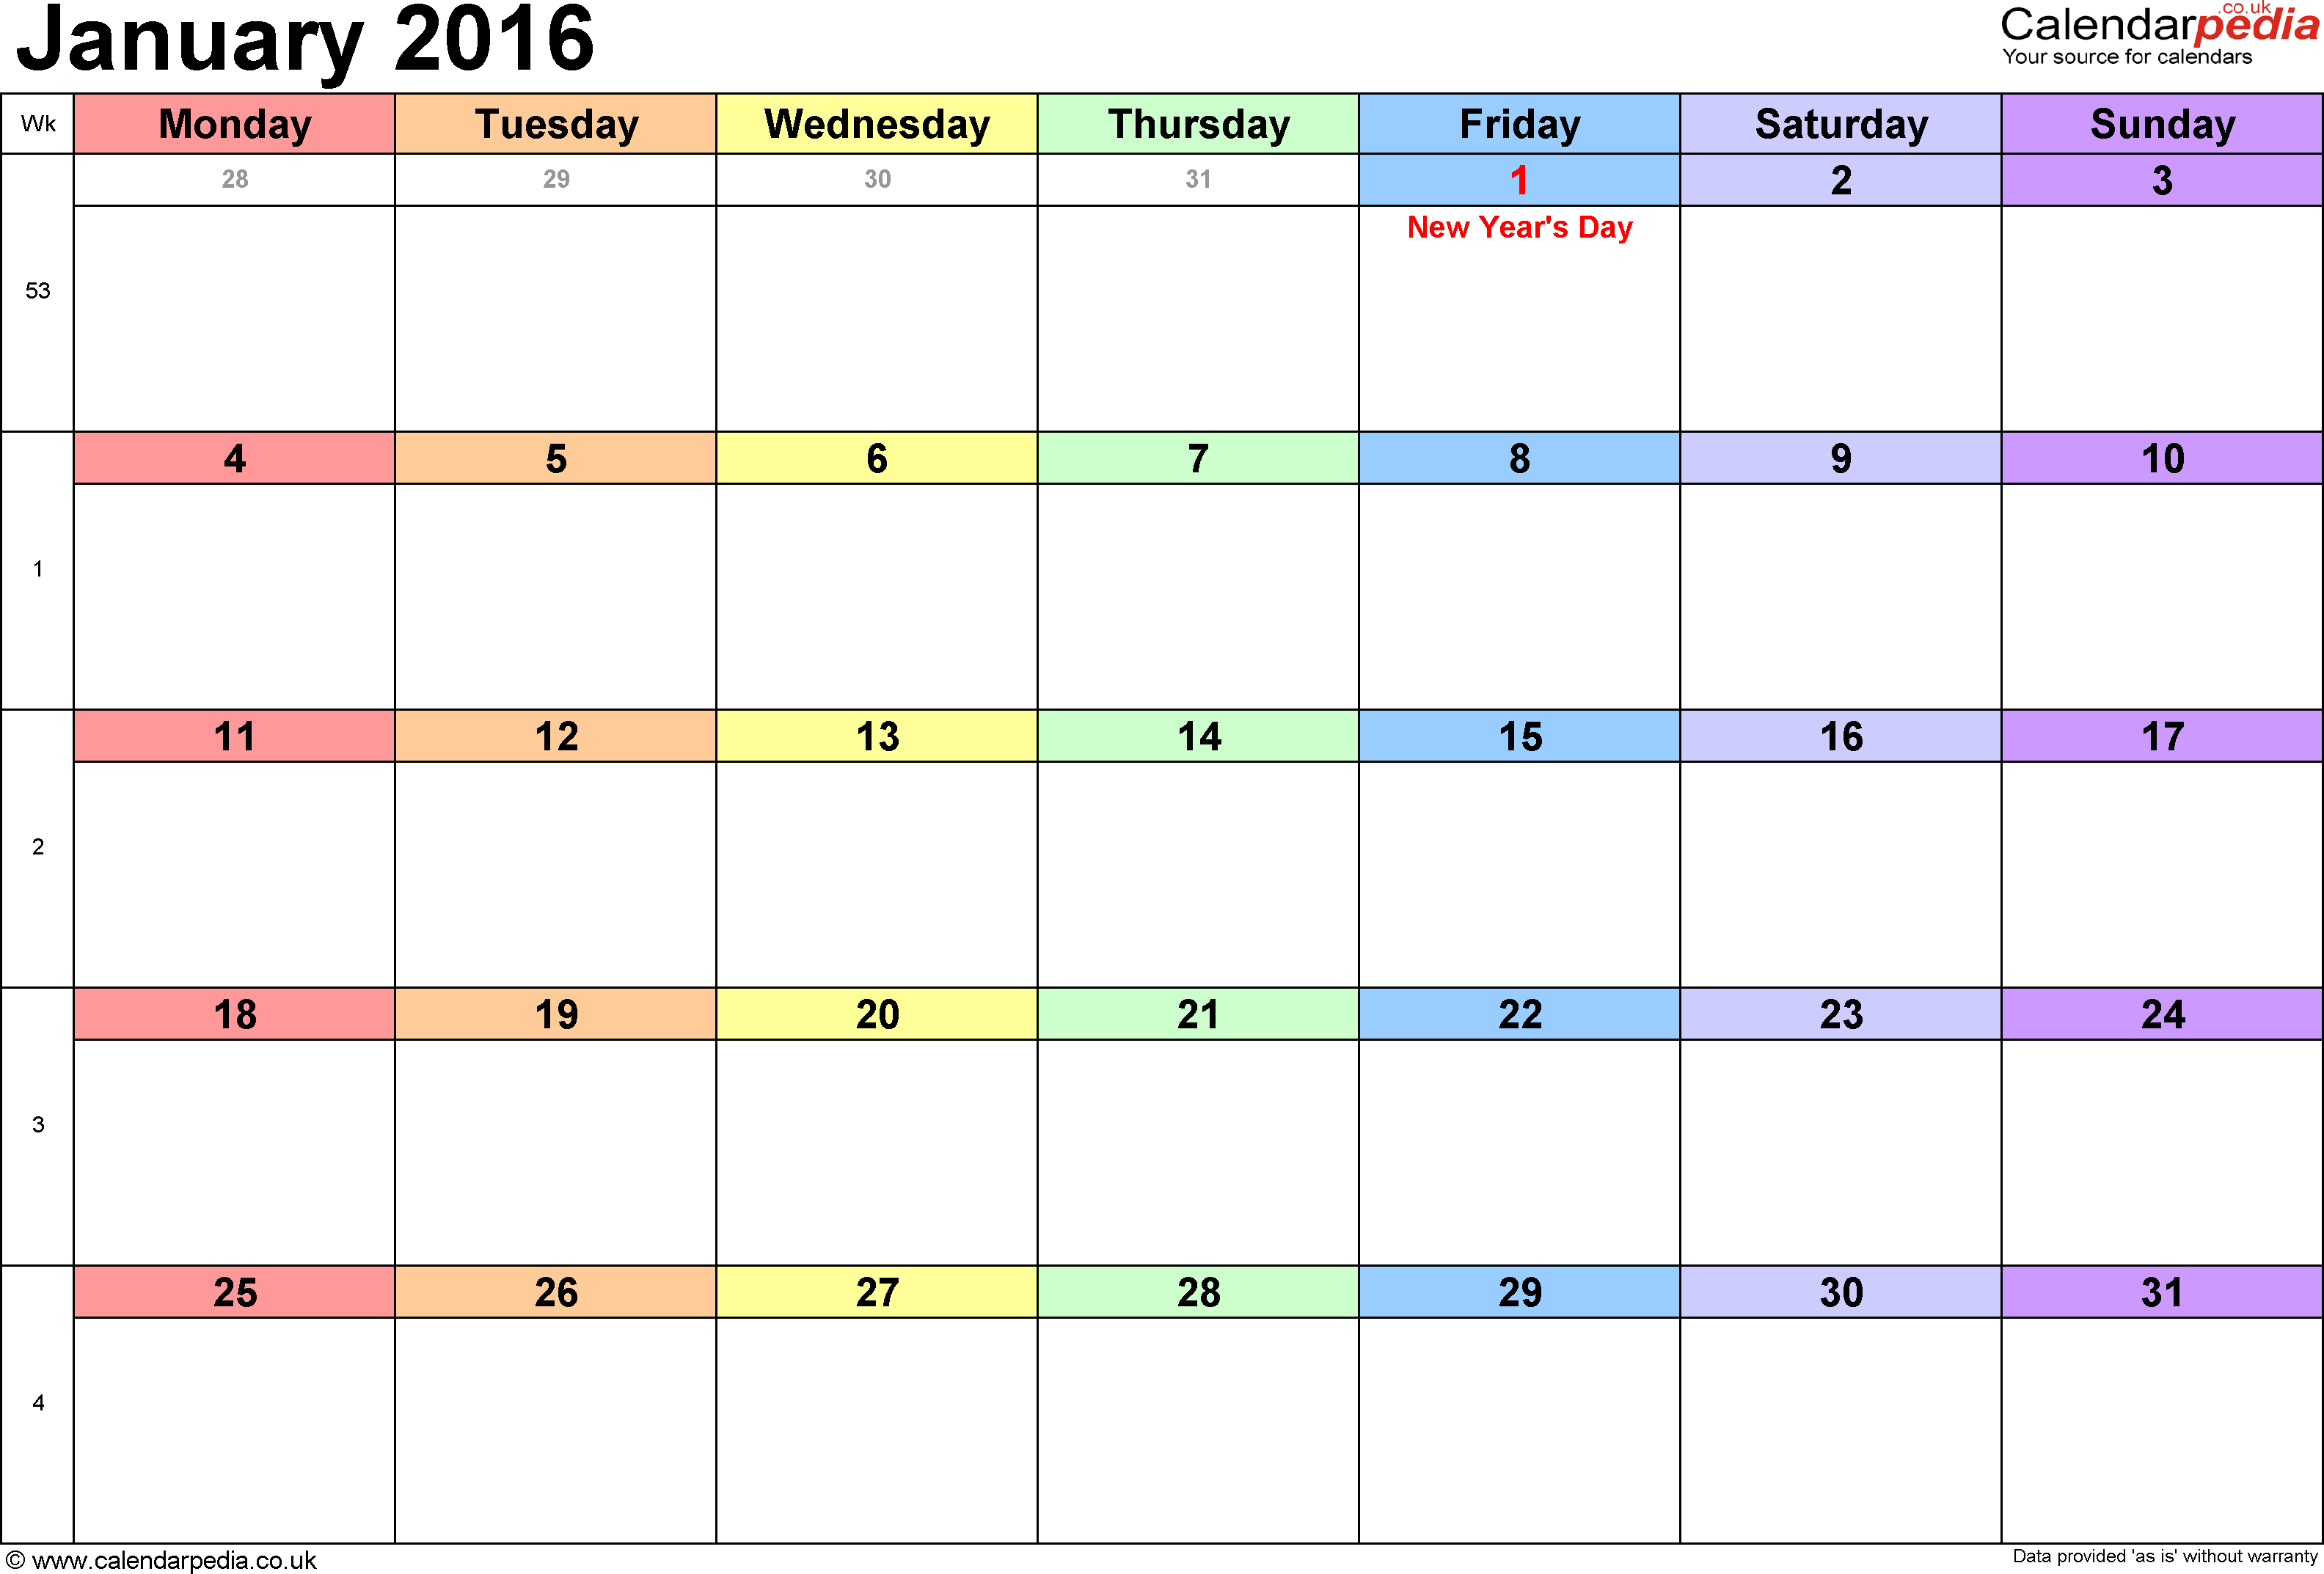 Calendar January 2016 UK, Bank Holidays, Excel/PDF/Word Templates